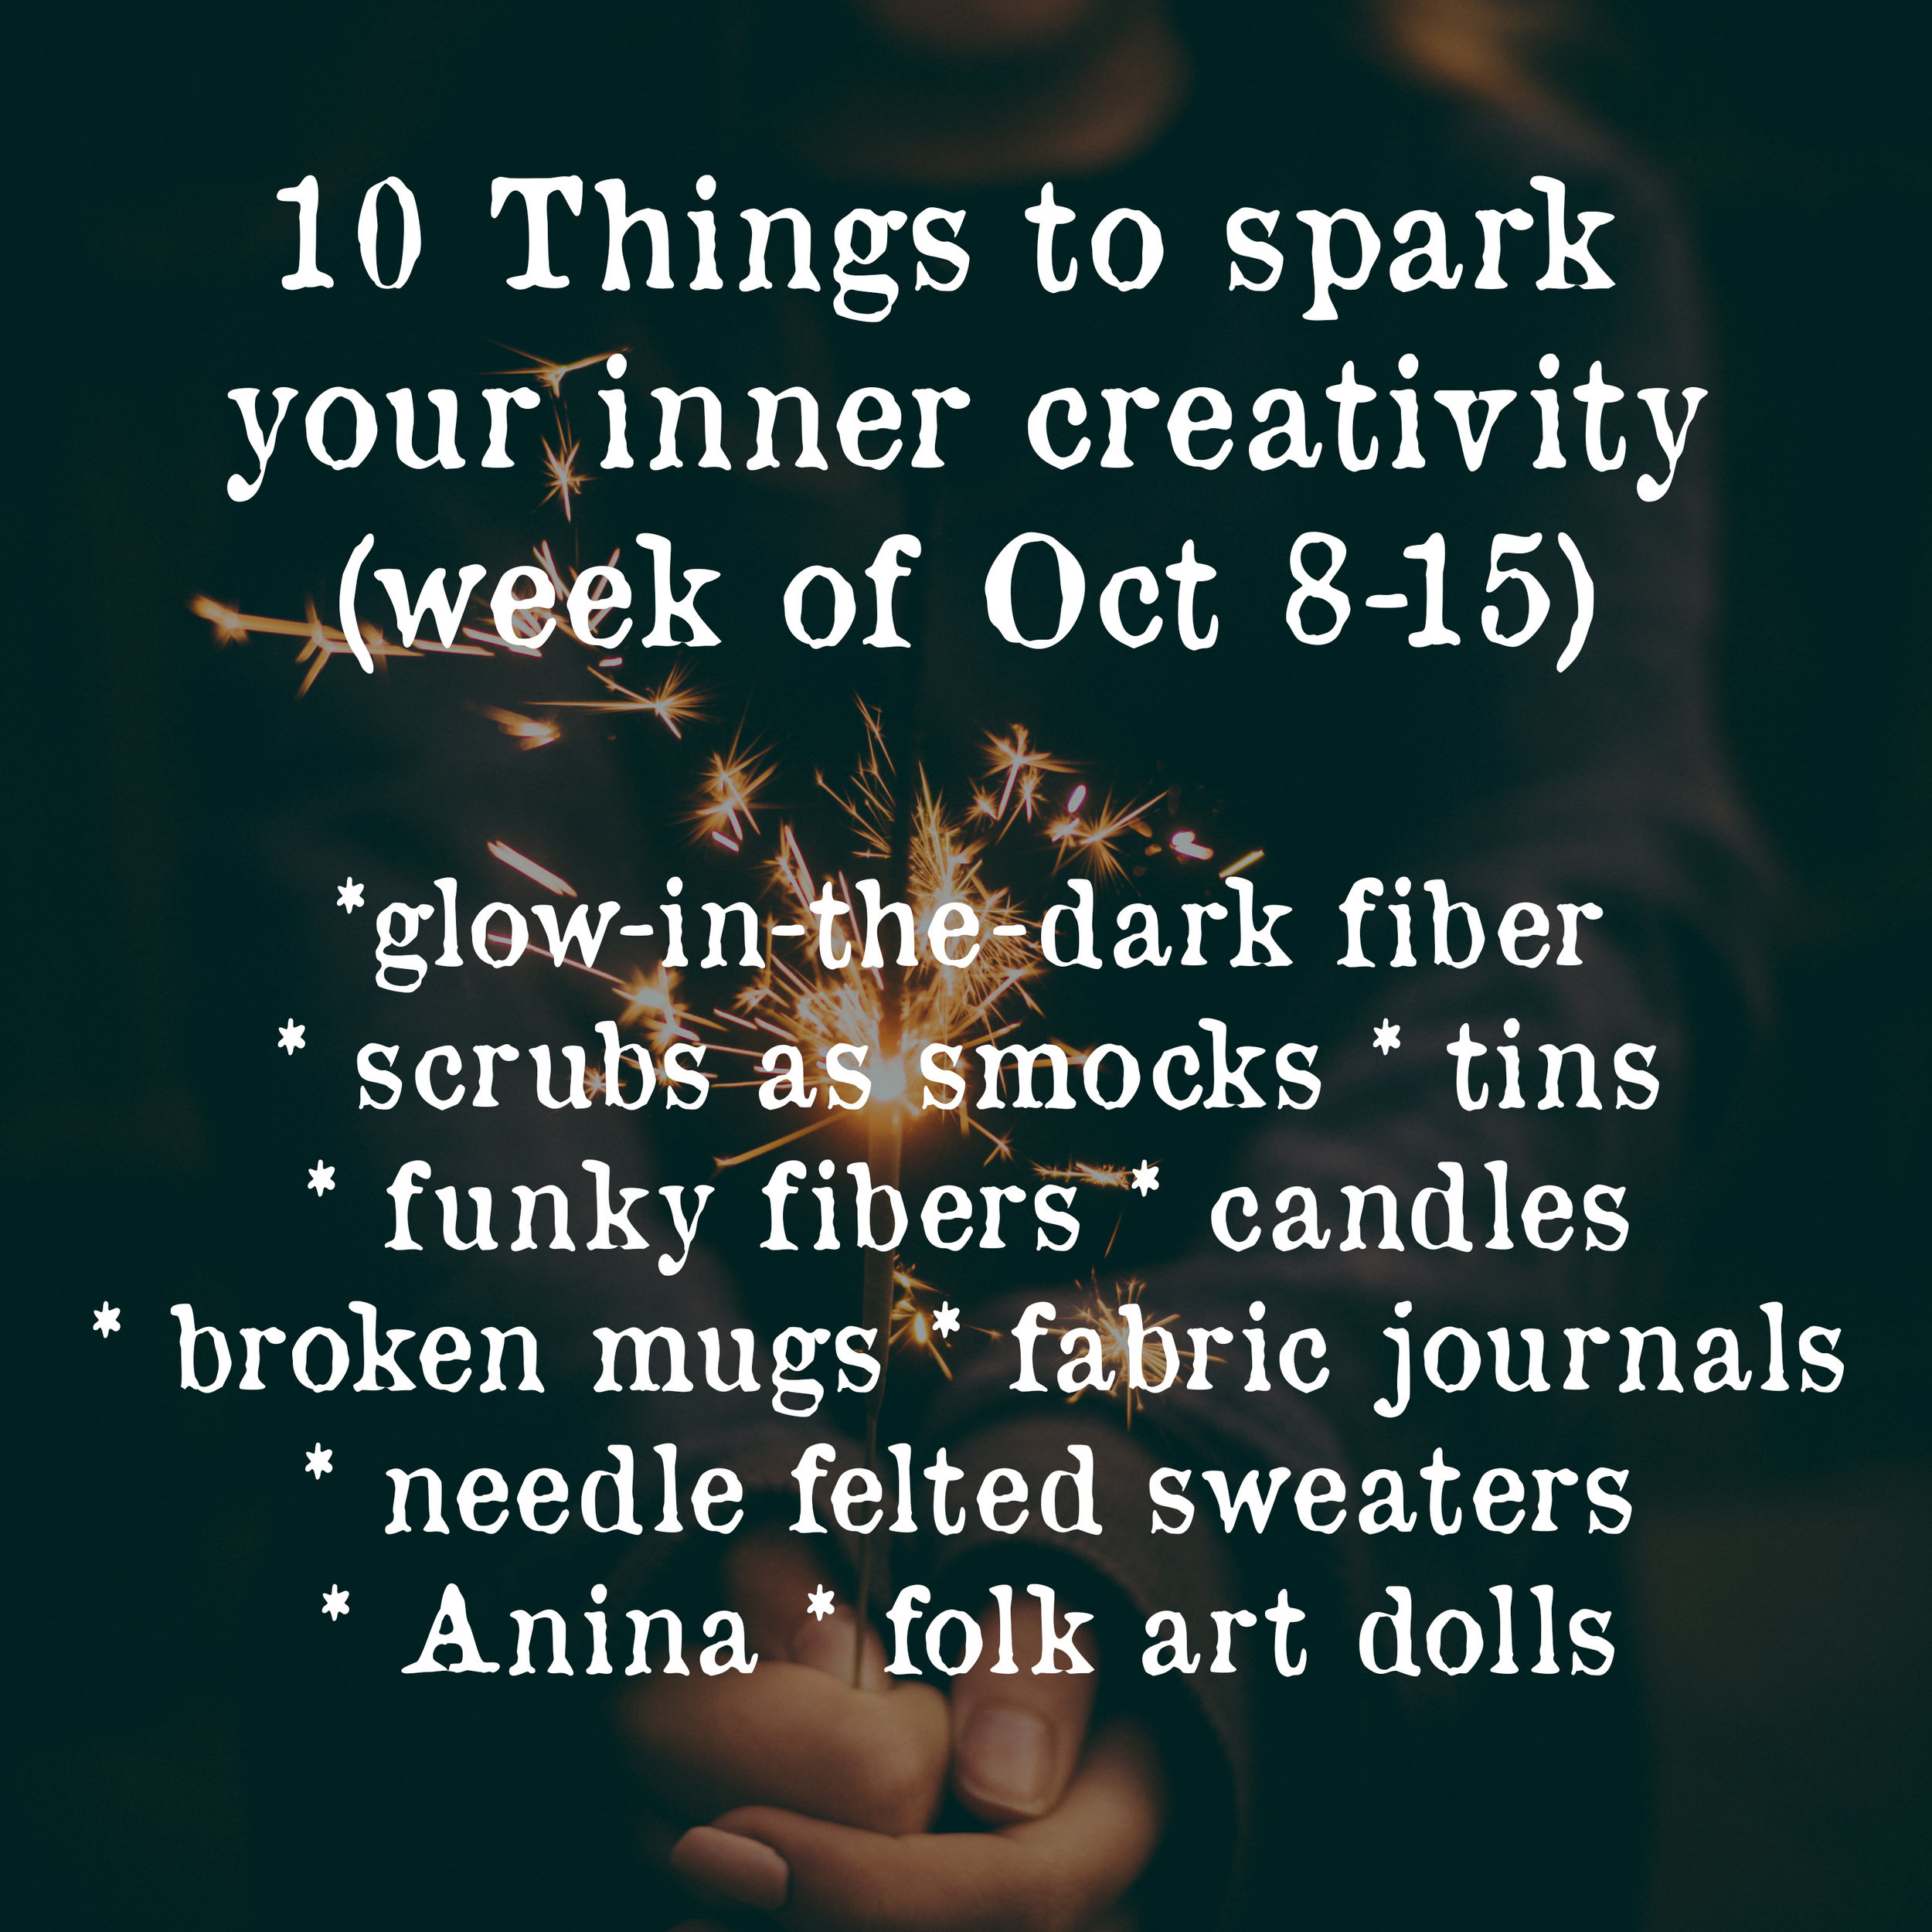 10 things to spark your inner creativity, week of oct 8-15: glow in the dark fiber, scrubs as smocks, tins, funky fibers, candles, broken mugs, fabric journals, needle felted sweaters, Anina, folk art dolls